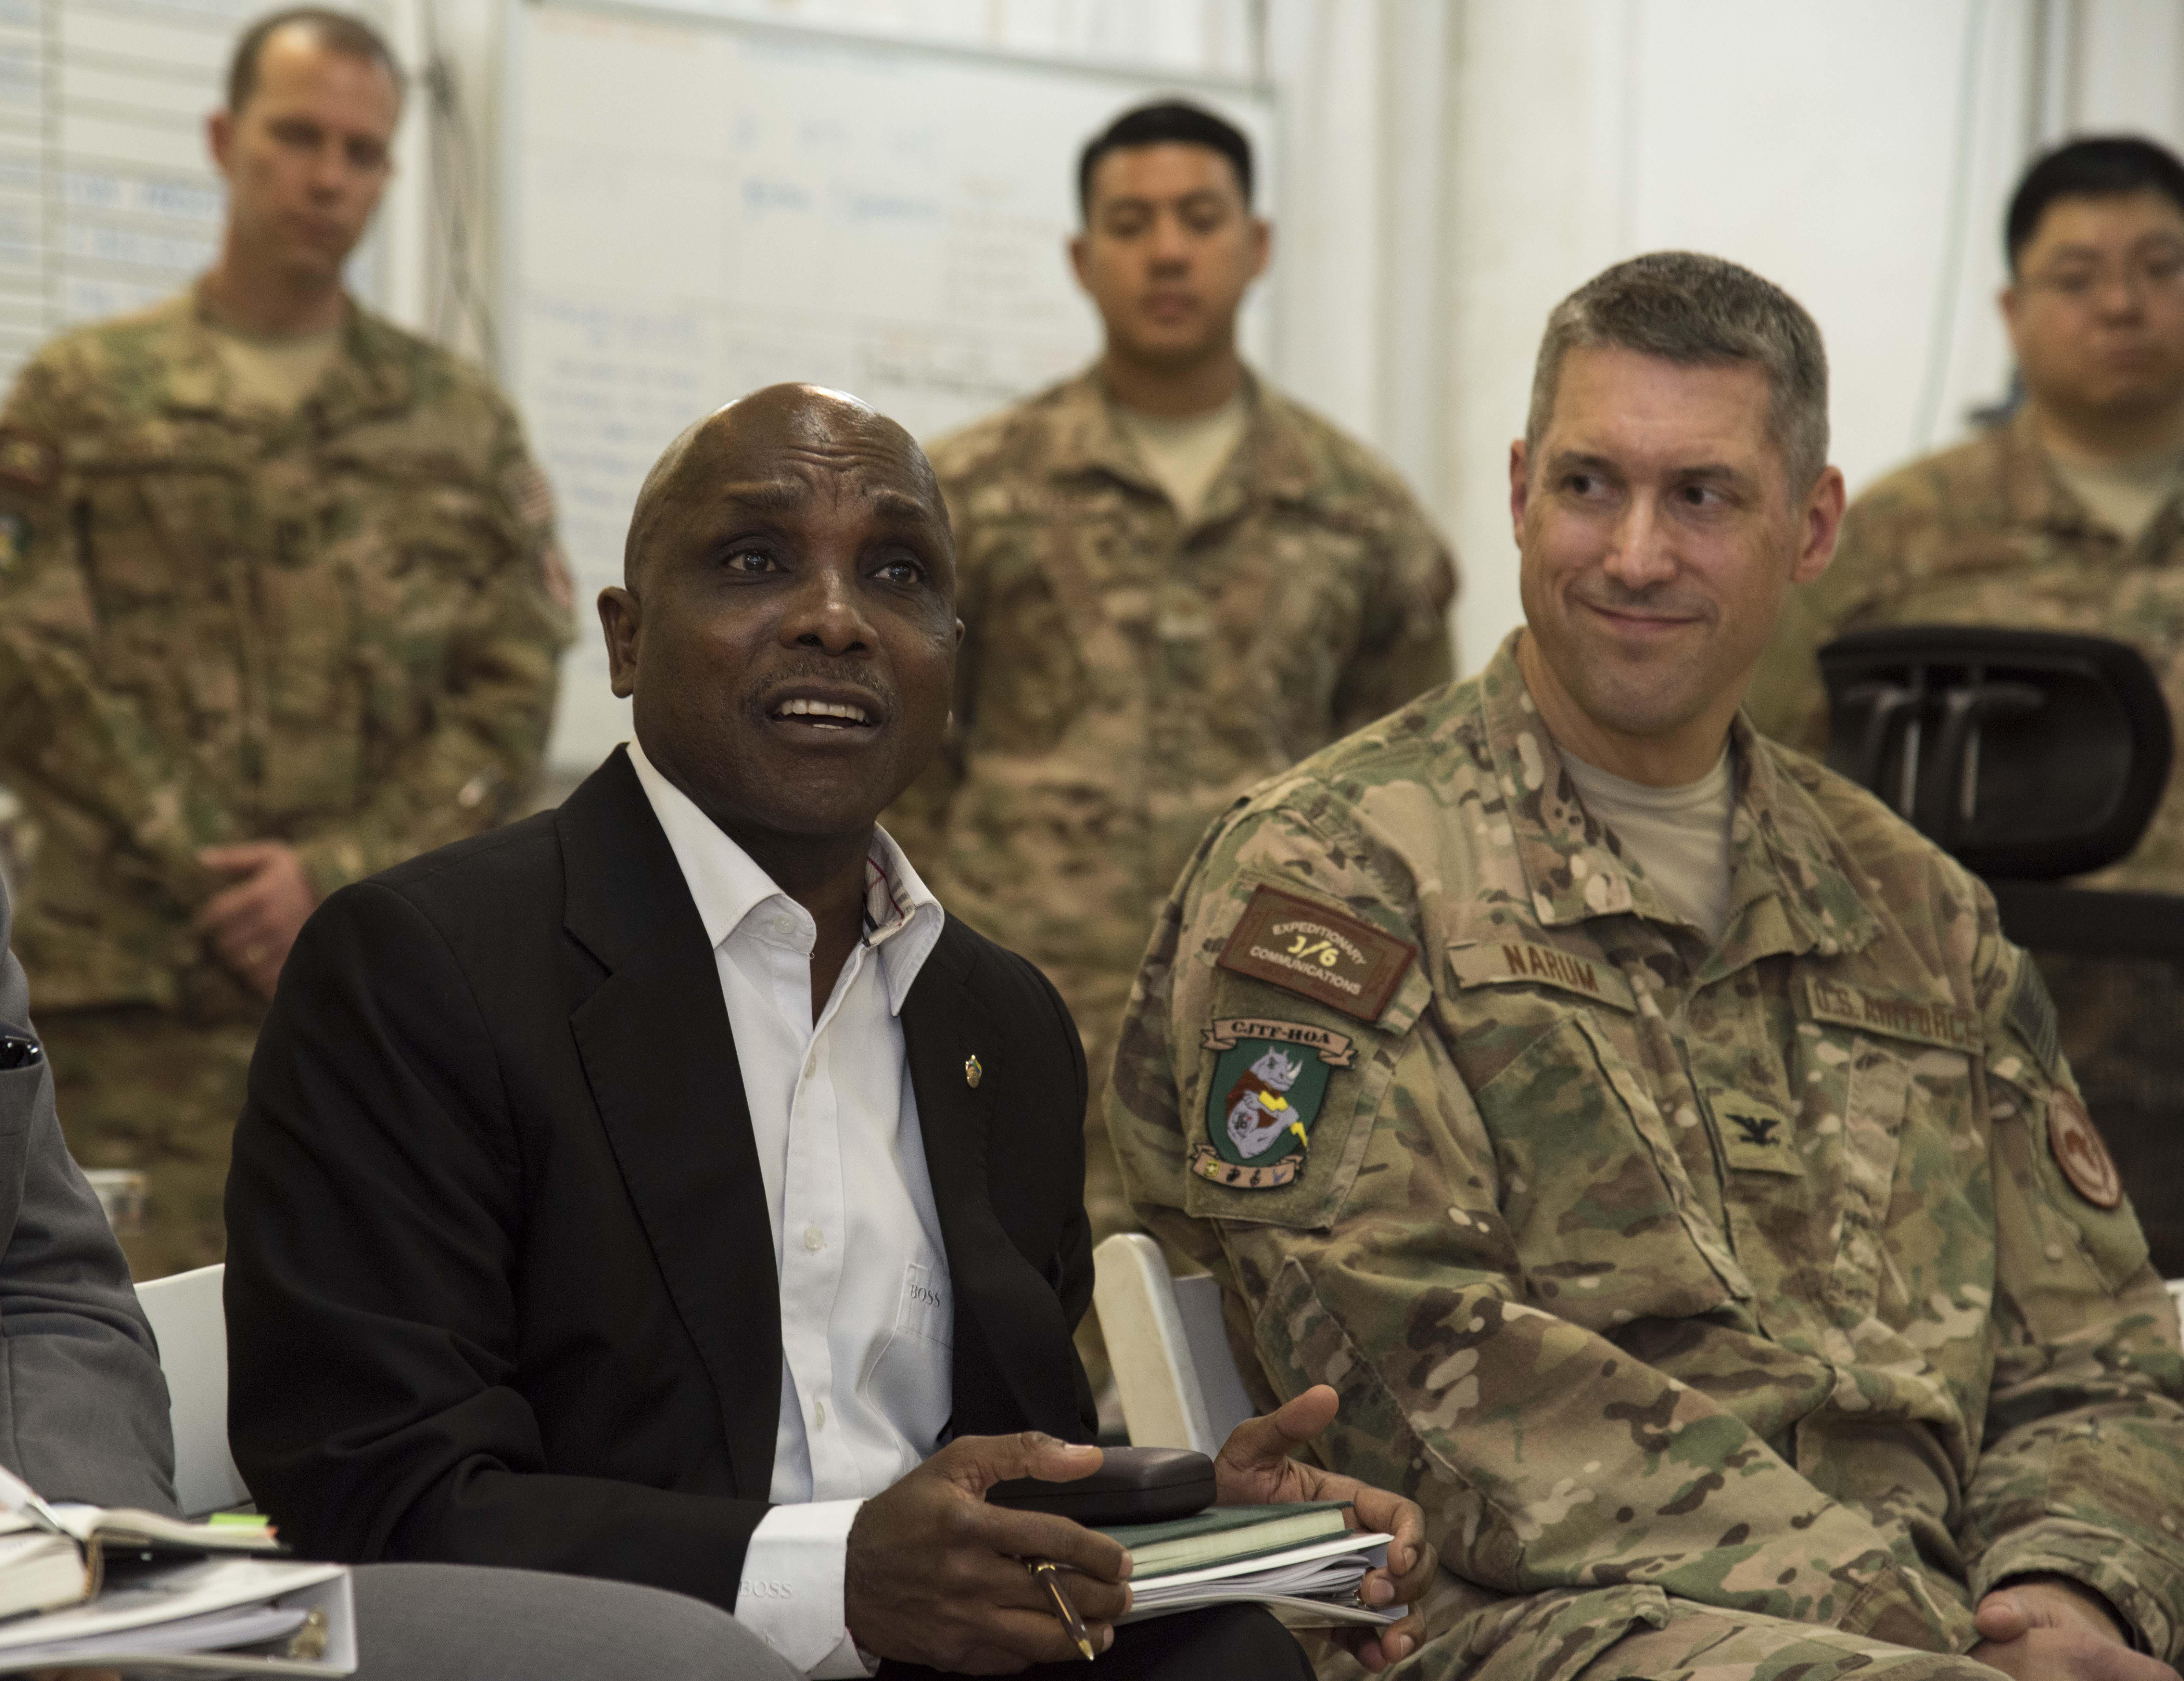 Ambassador Issimail Chanfi, Eastern Africa Standby Force (EASF) director, speaks to Airmen from the Combined Joint Task Force-Horn of Africa's Tactical Communications Directorate Oct. 27, 2015 at Camp Lemonnier, Djibouti. Chanfi was shown available strategies for communication in remote locations or those affected by disaster where infrastructures are damaged. (U.S. Air Force photo by Staff Sgt. Victoria Sneed)